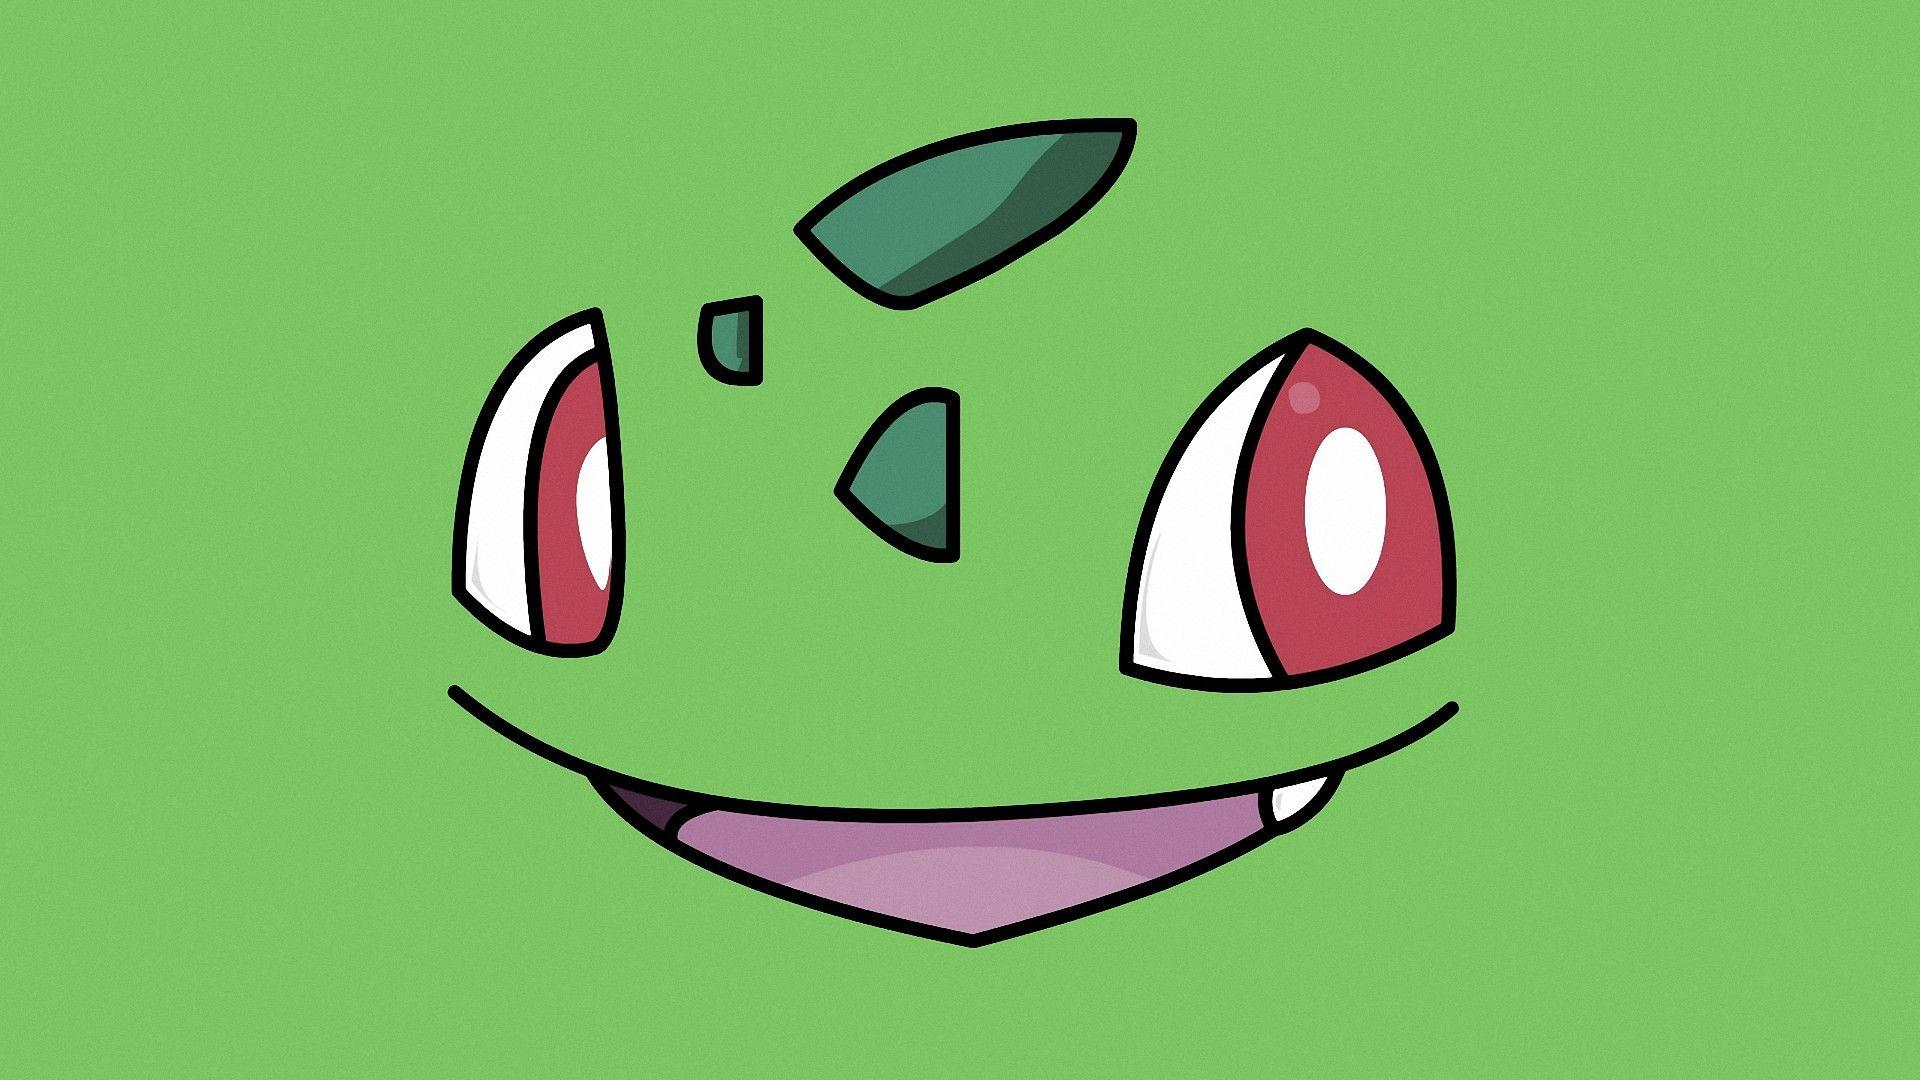 Pokemon Bulbasaur Simple Cartoon Wallpapers